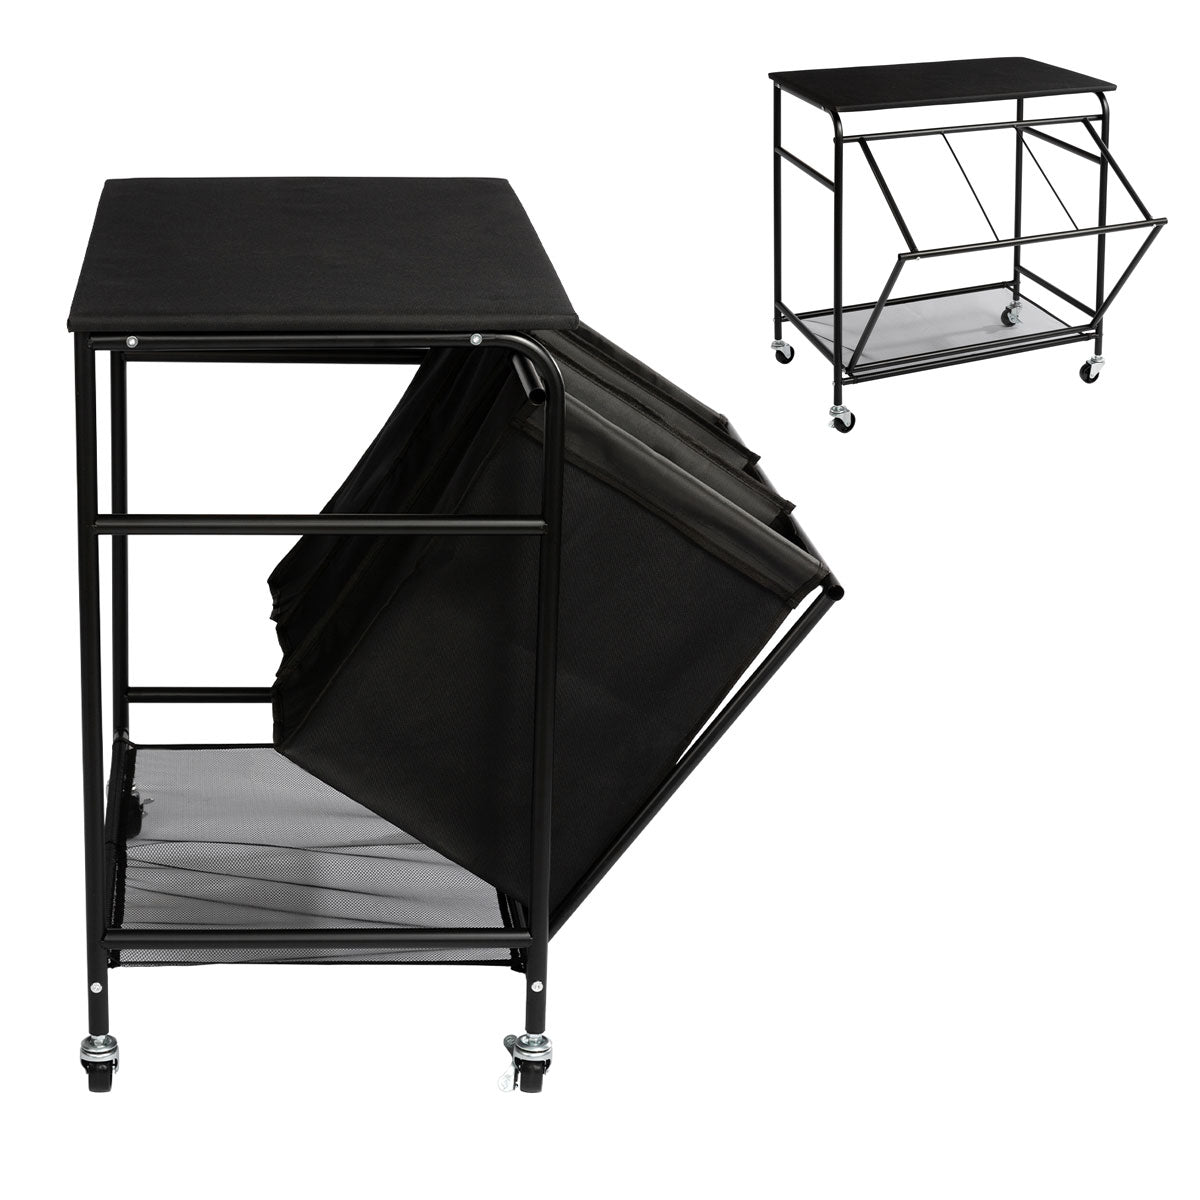 HollyHOME Laundry Sorter Cart  with Unopenable Ironing Board with Side pull 3-Bag Heavy-Duty Laundry Hamper and 4 Wheels Black - HollyHOME